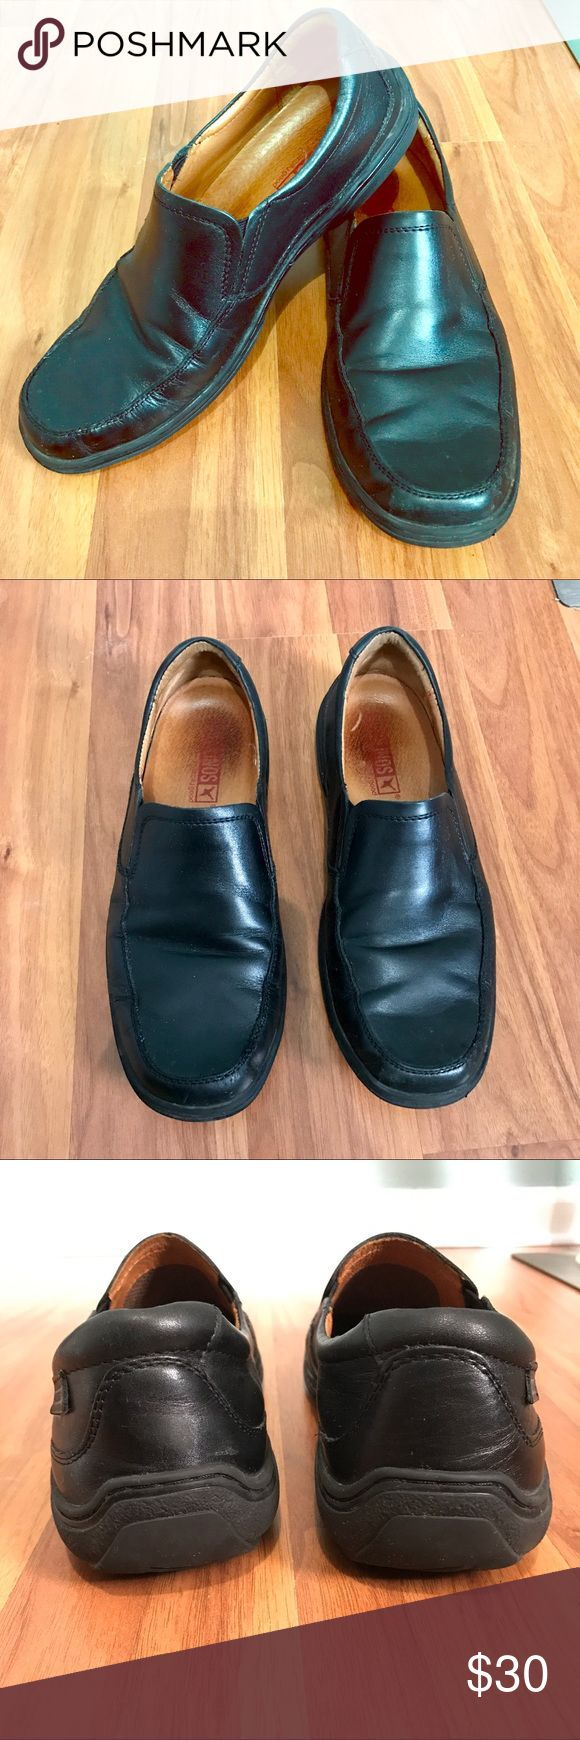 Men's Pikolinos black leather loafers slip ons 42 Casual shoes, comfortable, and in great shape. They have some wear but have lots of life left! PIKOLINOS Shoes Loafers & Slip-Ons